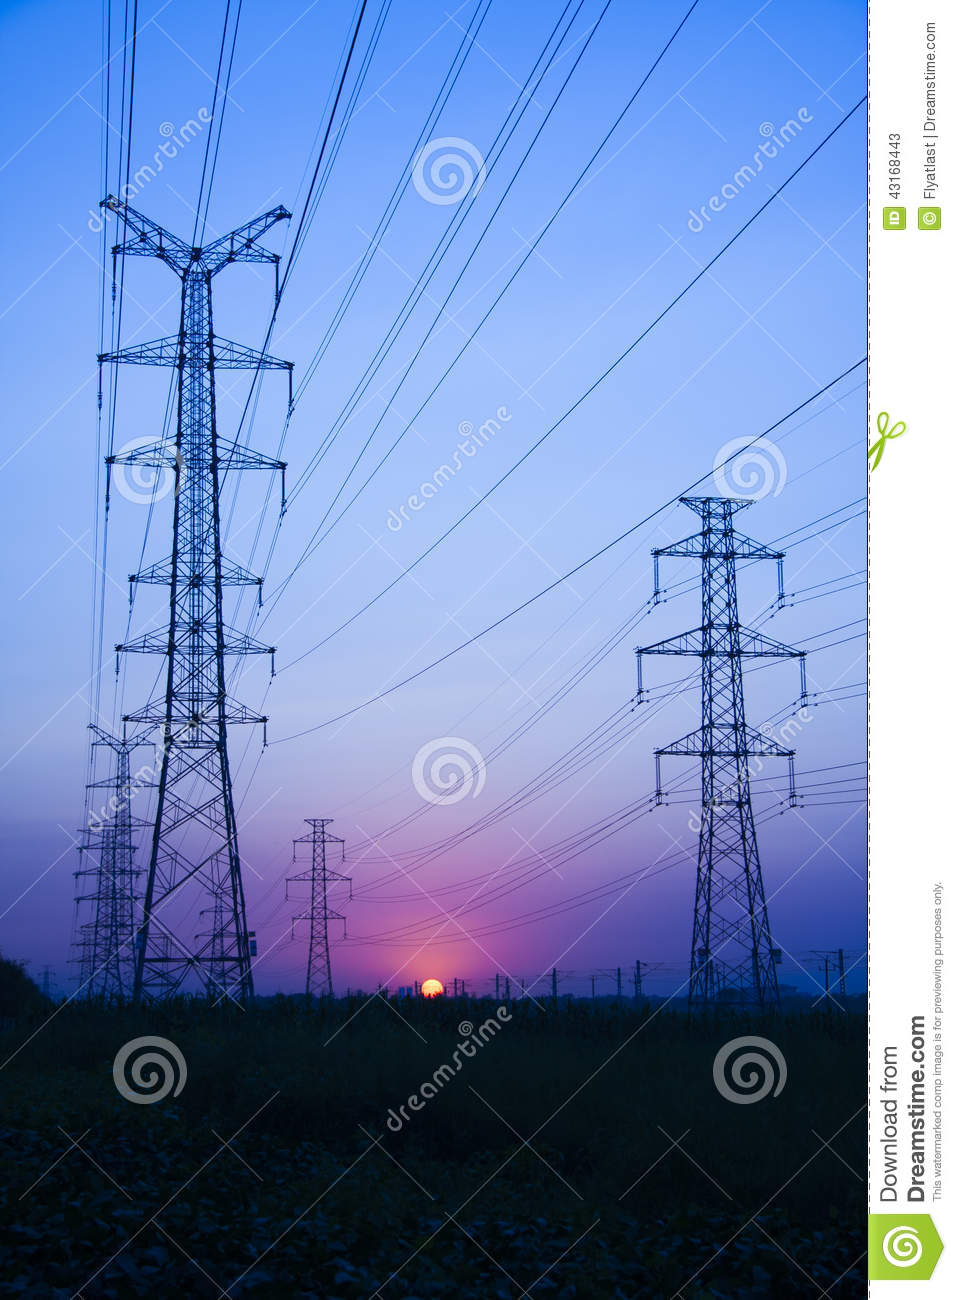 Electric Power Transmission : High voltage electricity transmission tower at sunset